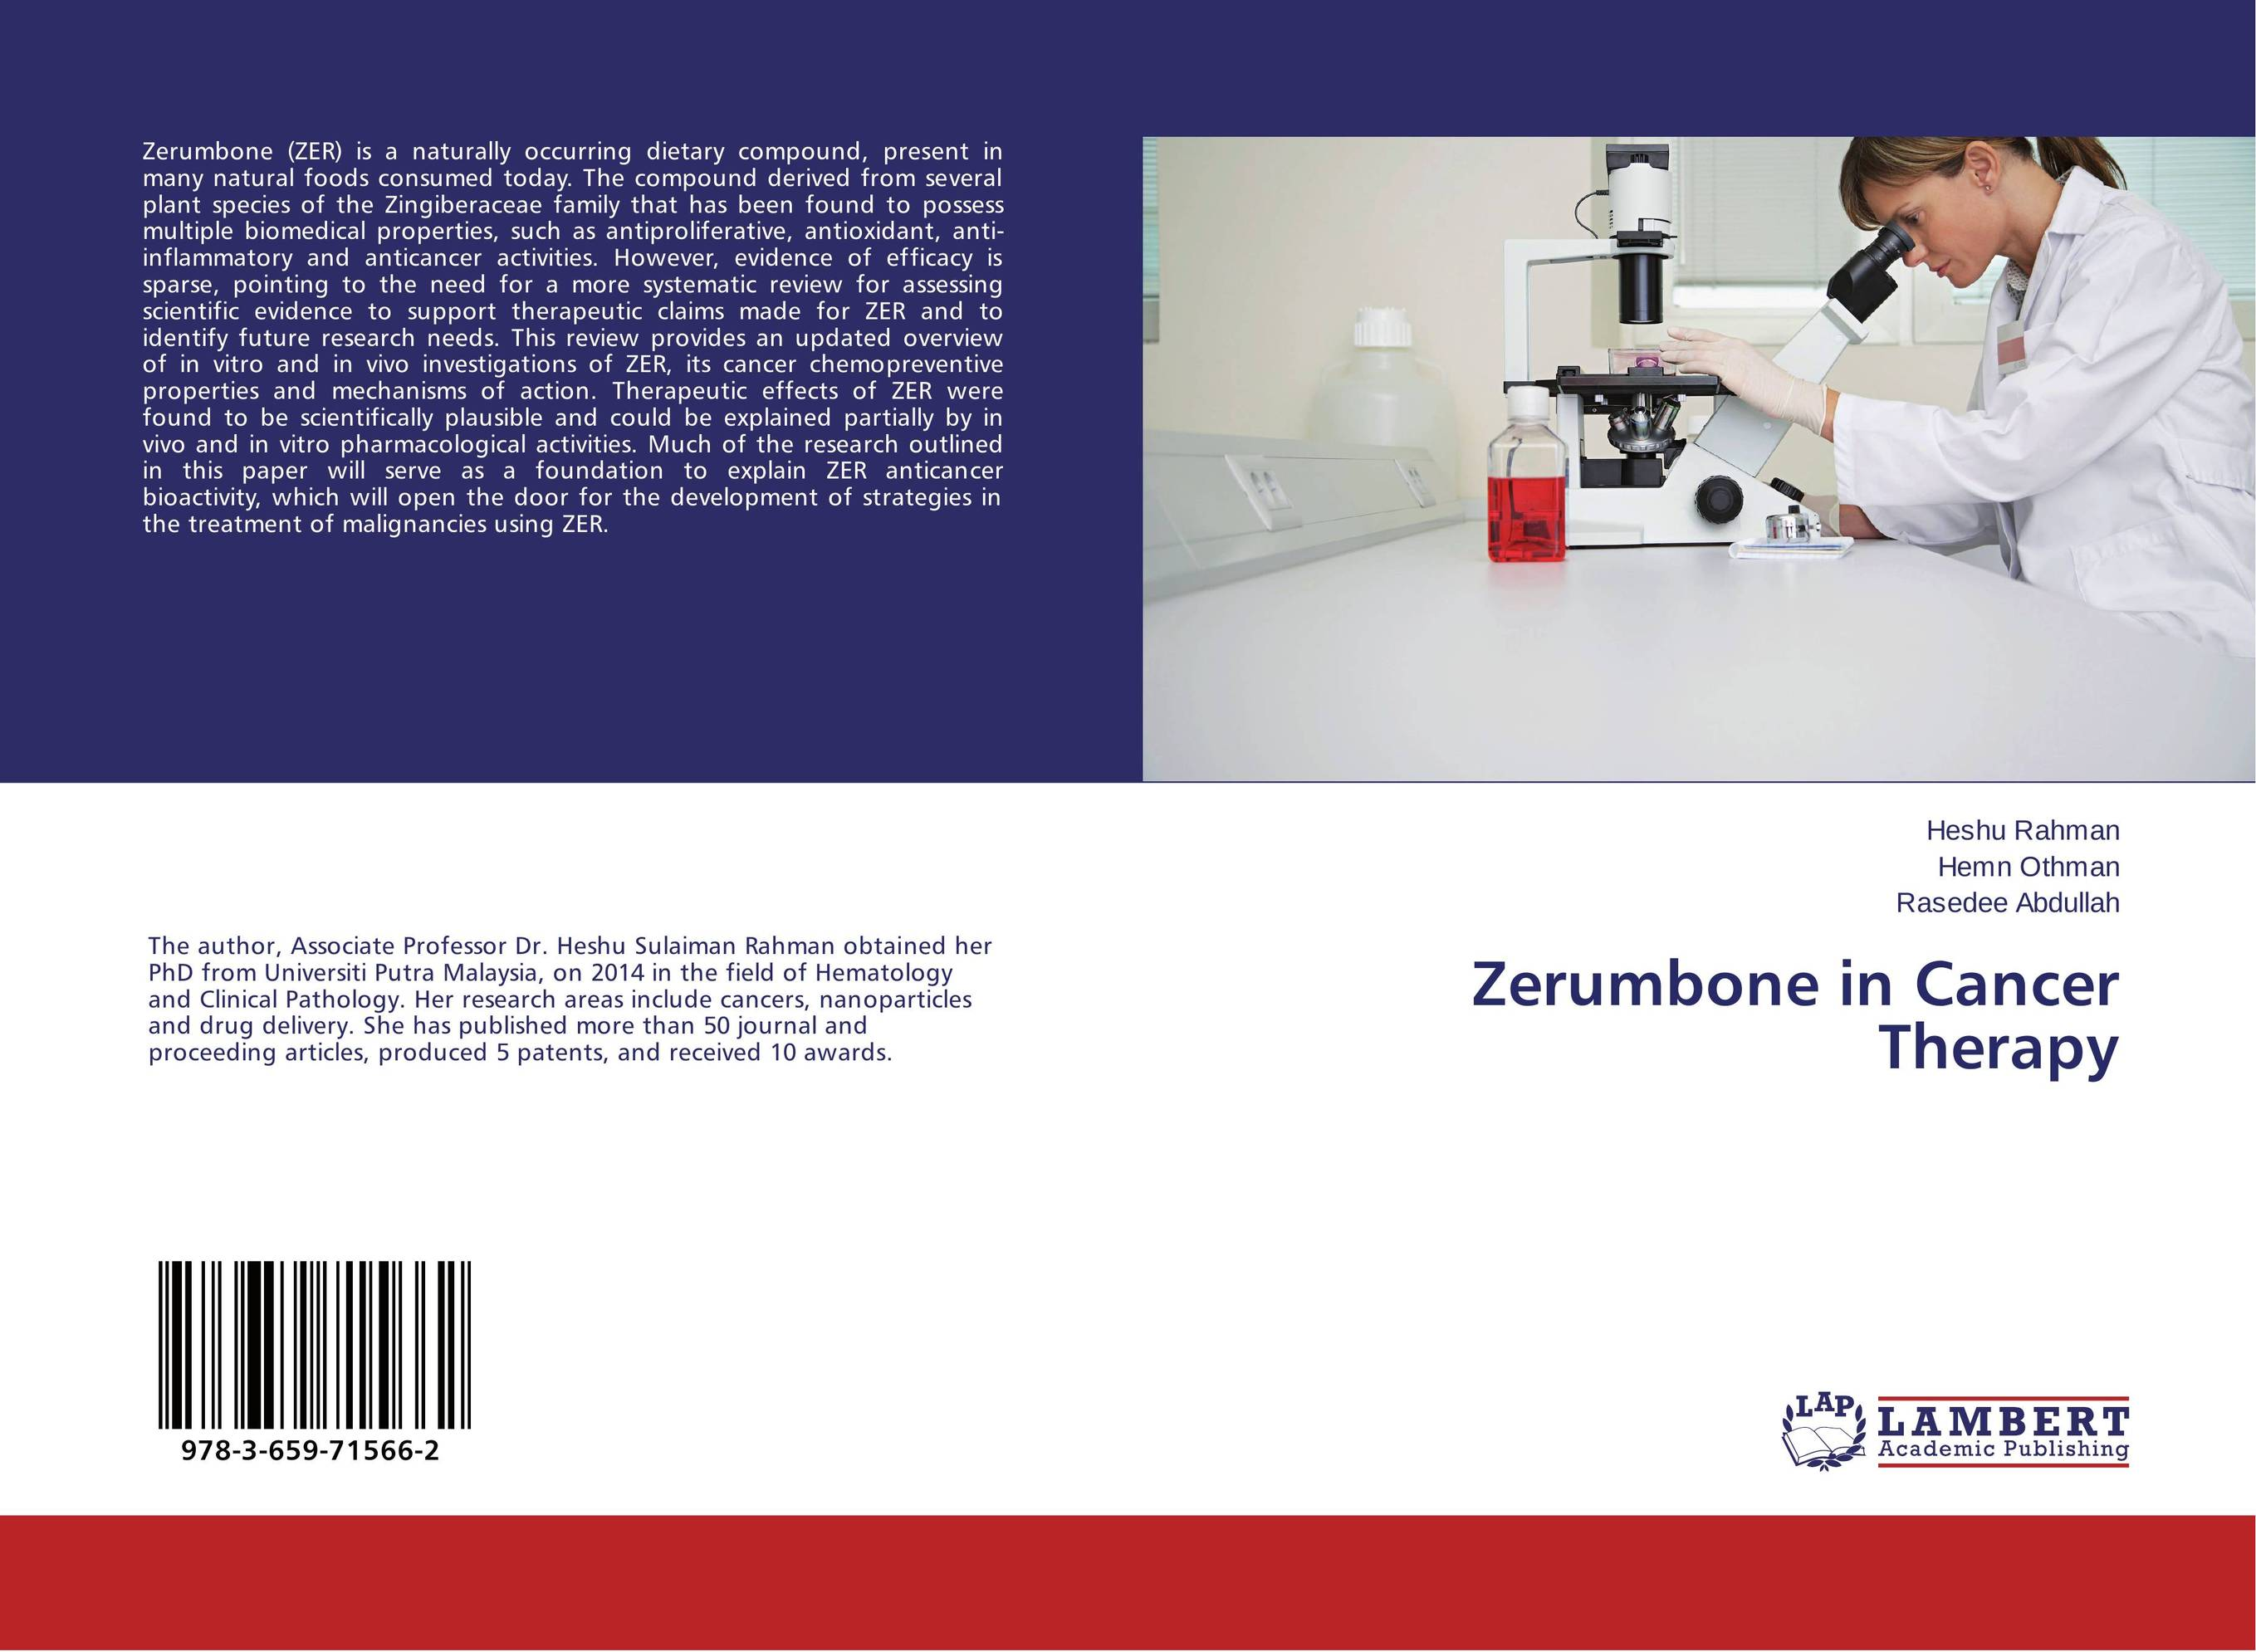 Zerumbone in Cancer Therapy found in brooklyn